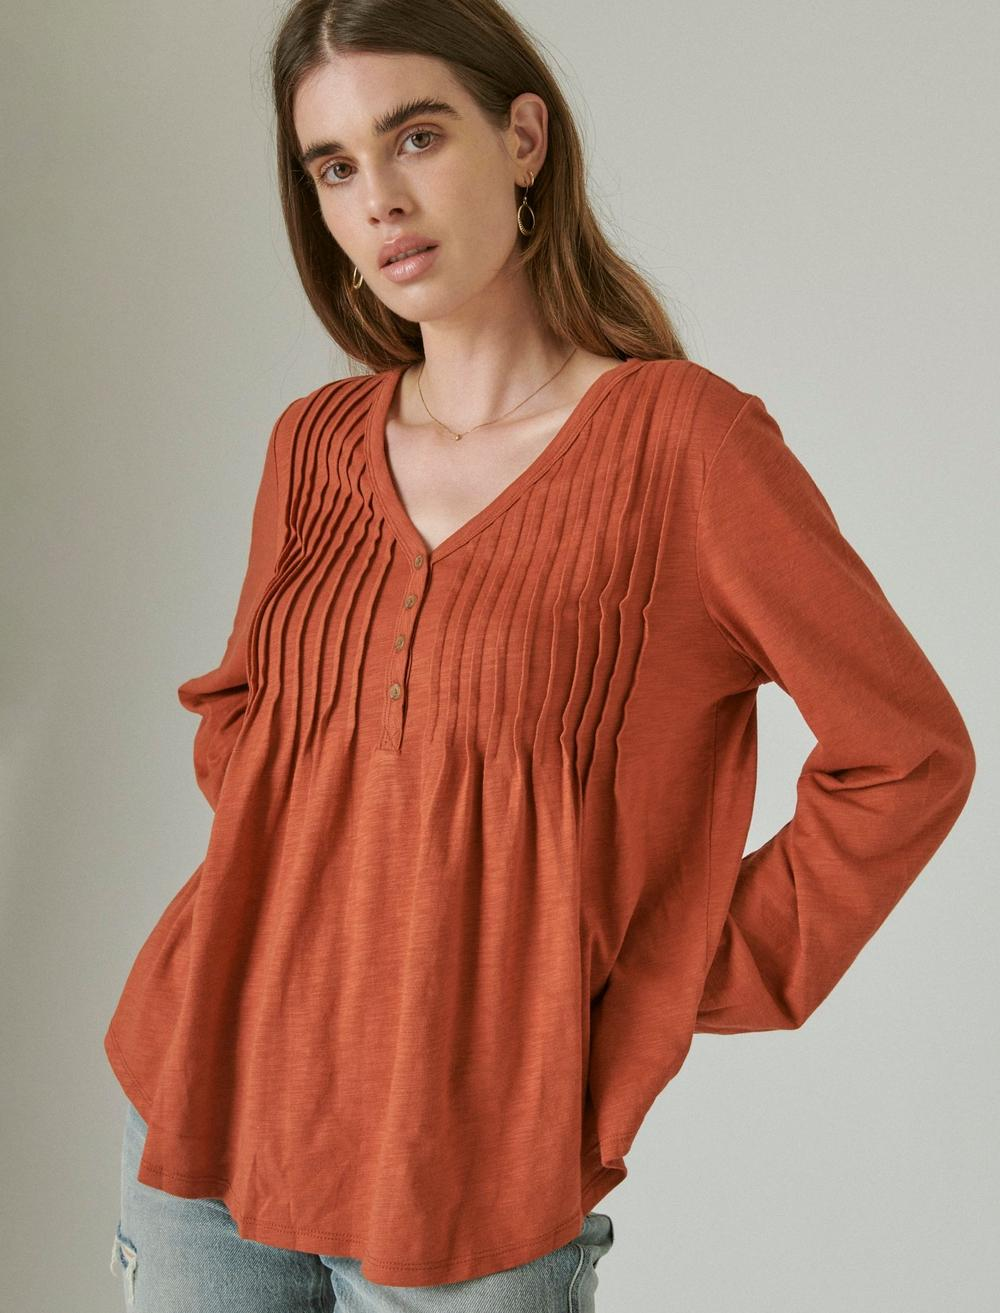 PLEATED V-NECK KNIT TOP, image 1